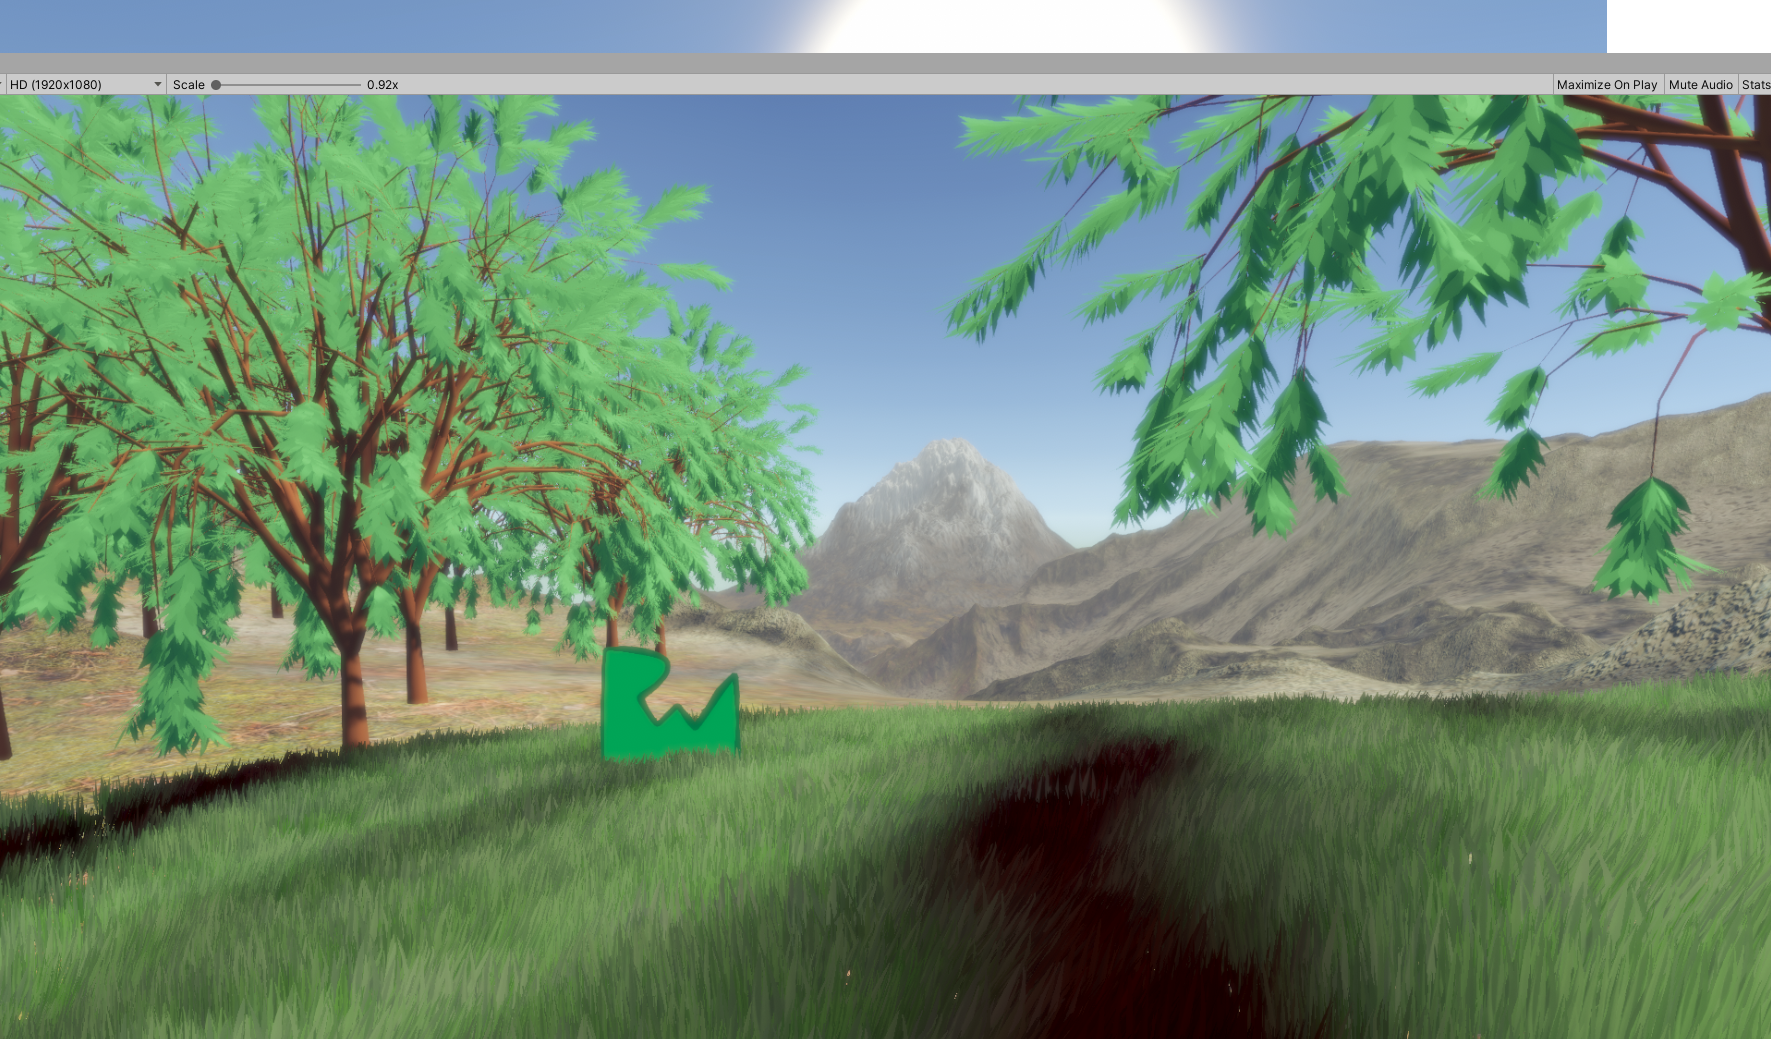 Mountains with two trees with leaves on them